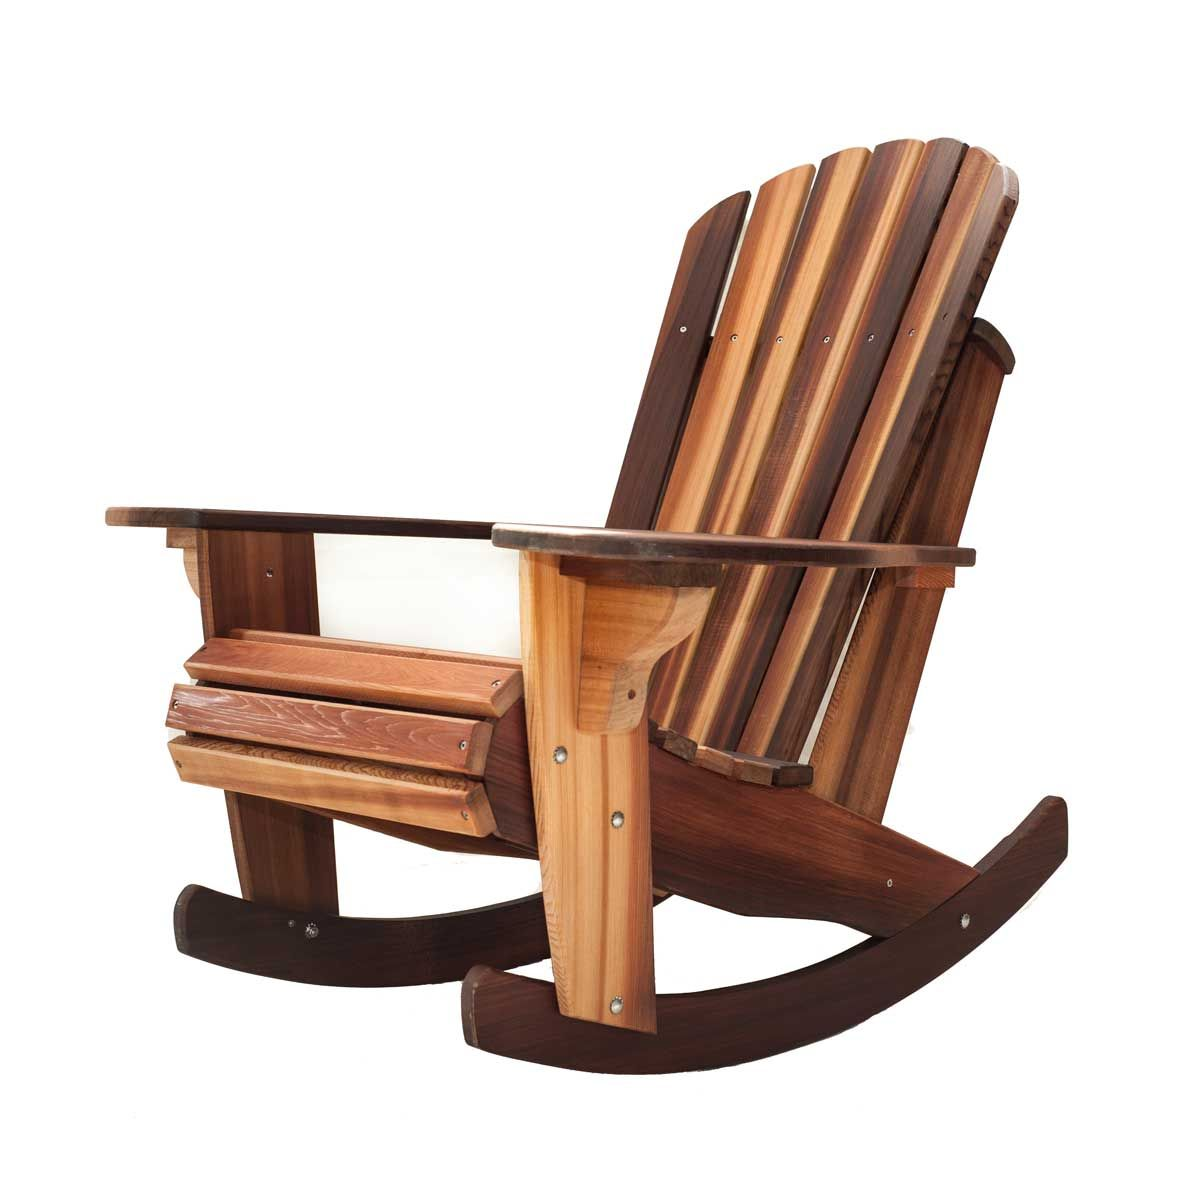 Cedar Rocking Chairs Dining At Pier One Adirondack Chair